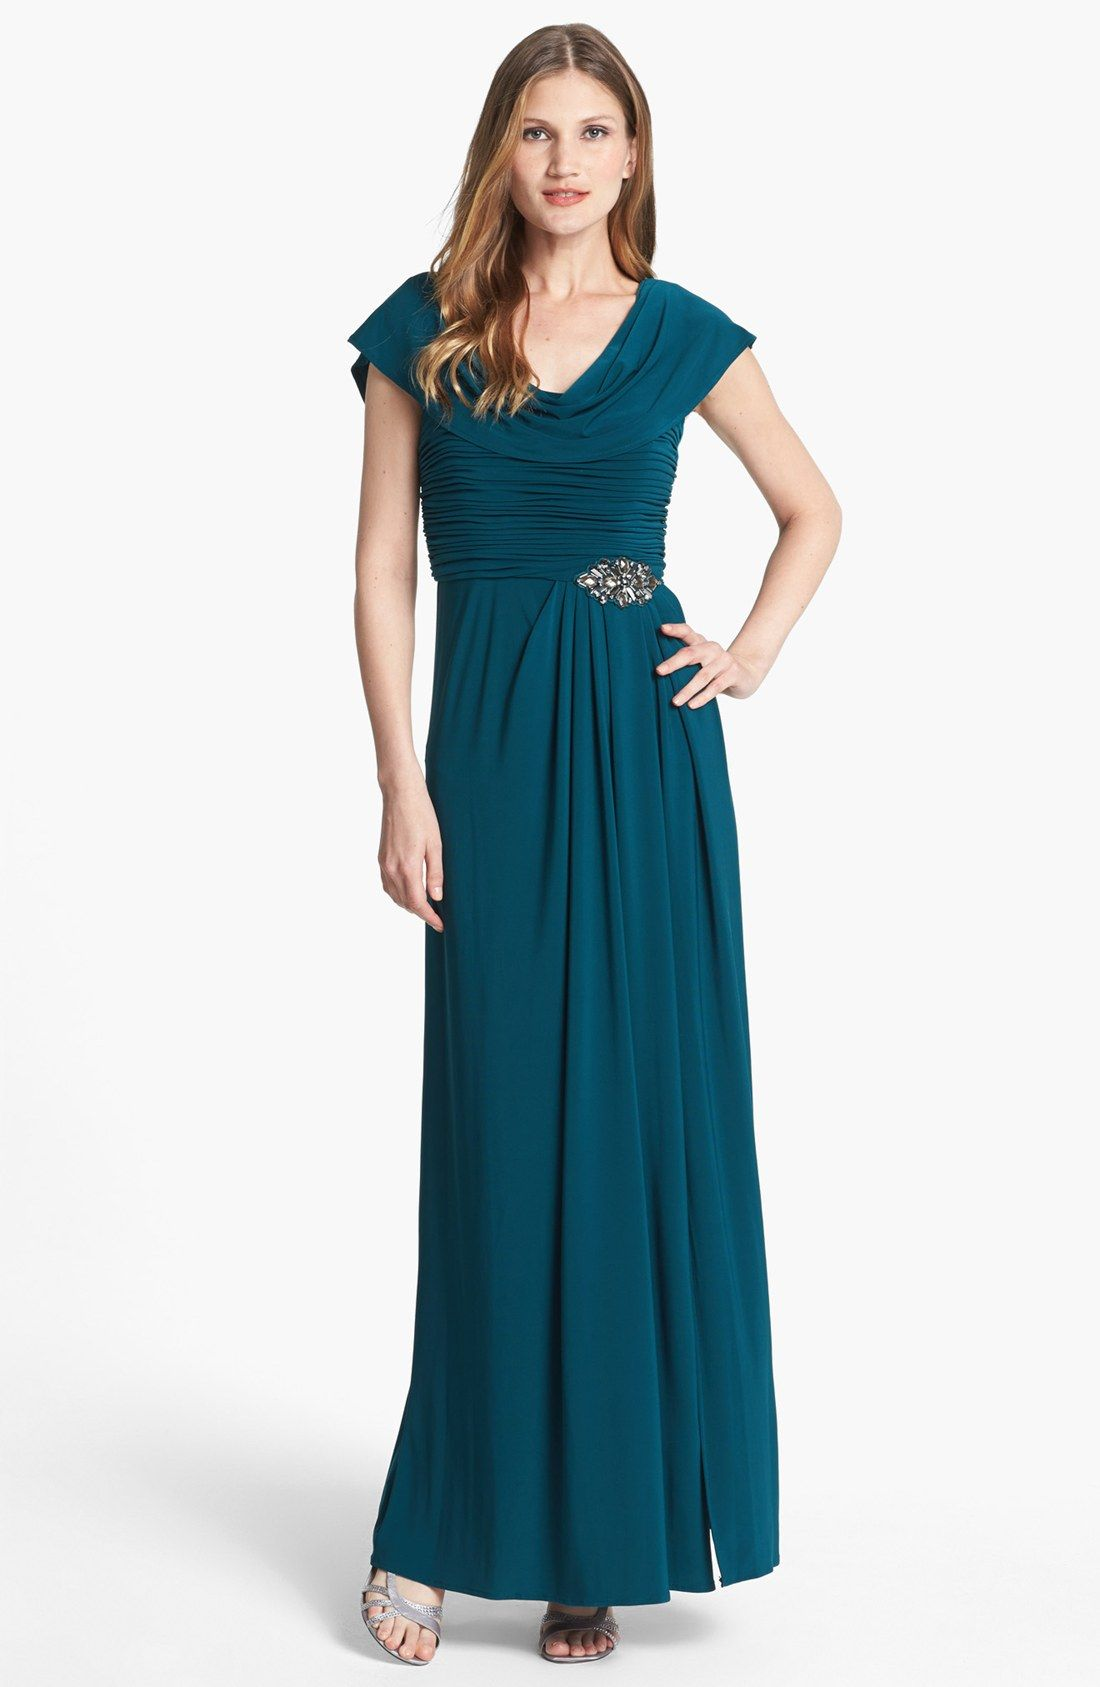 https://www.lyst.com/clothing/patra-draped-neckline-embellished-jersey-gown-emerald-1/?product_gallery=19348750